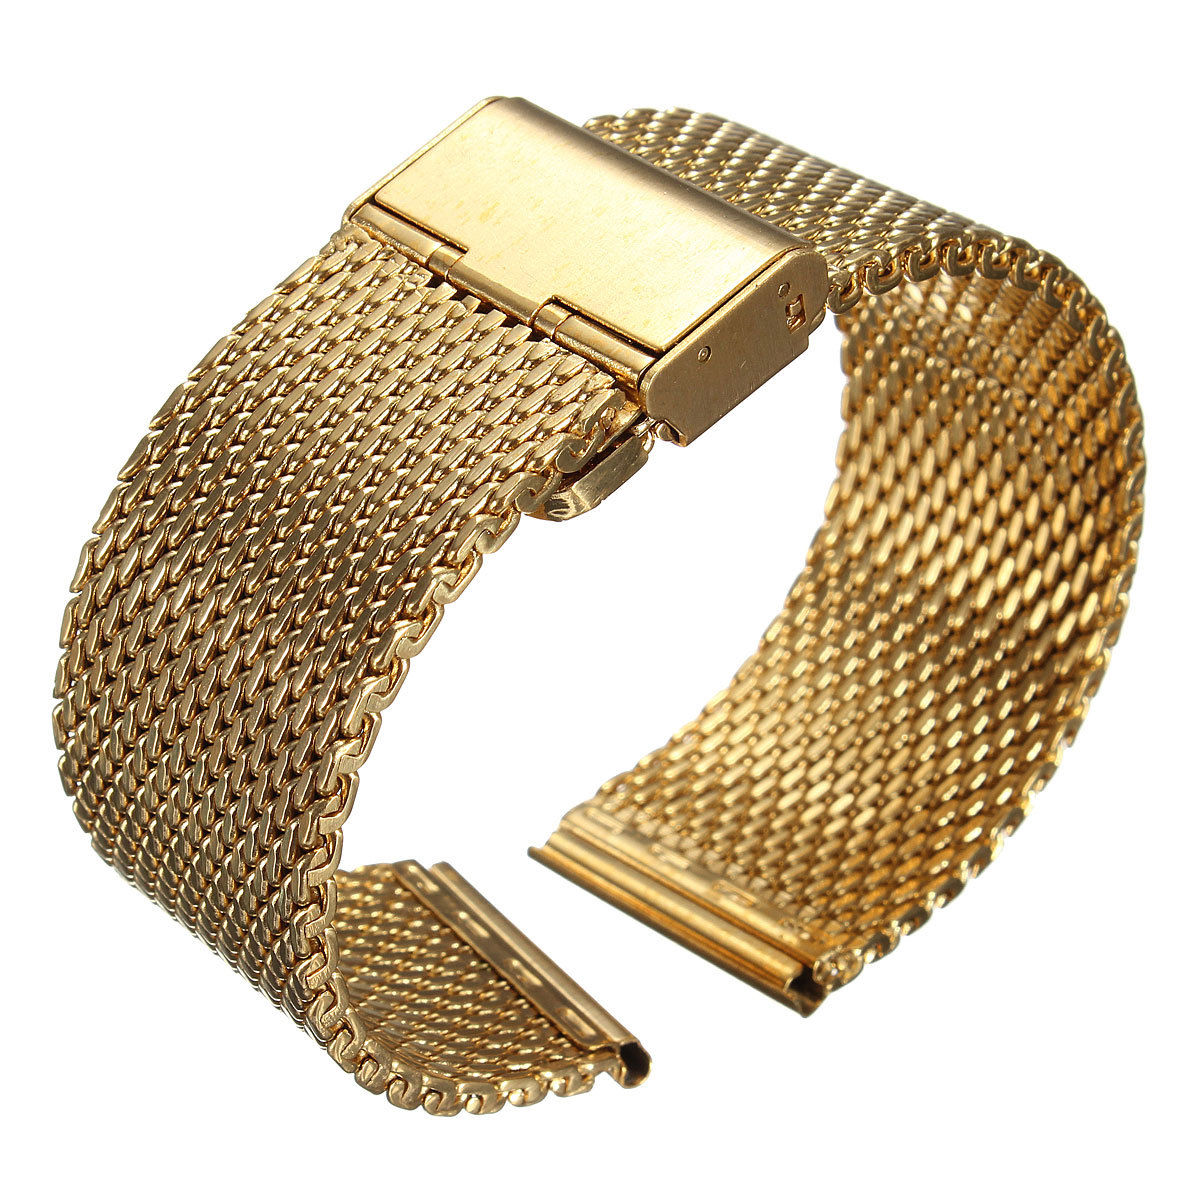 YCYS-New 20mm Watch Strap Shark Mesh Band Stainless Double Clasp Steel Bracelet GoldYCYS-New 20mm Watch Strap Shark Mesh Band Stainless Double Clasp Steel Bracelet Gold